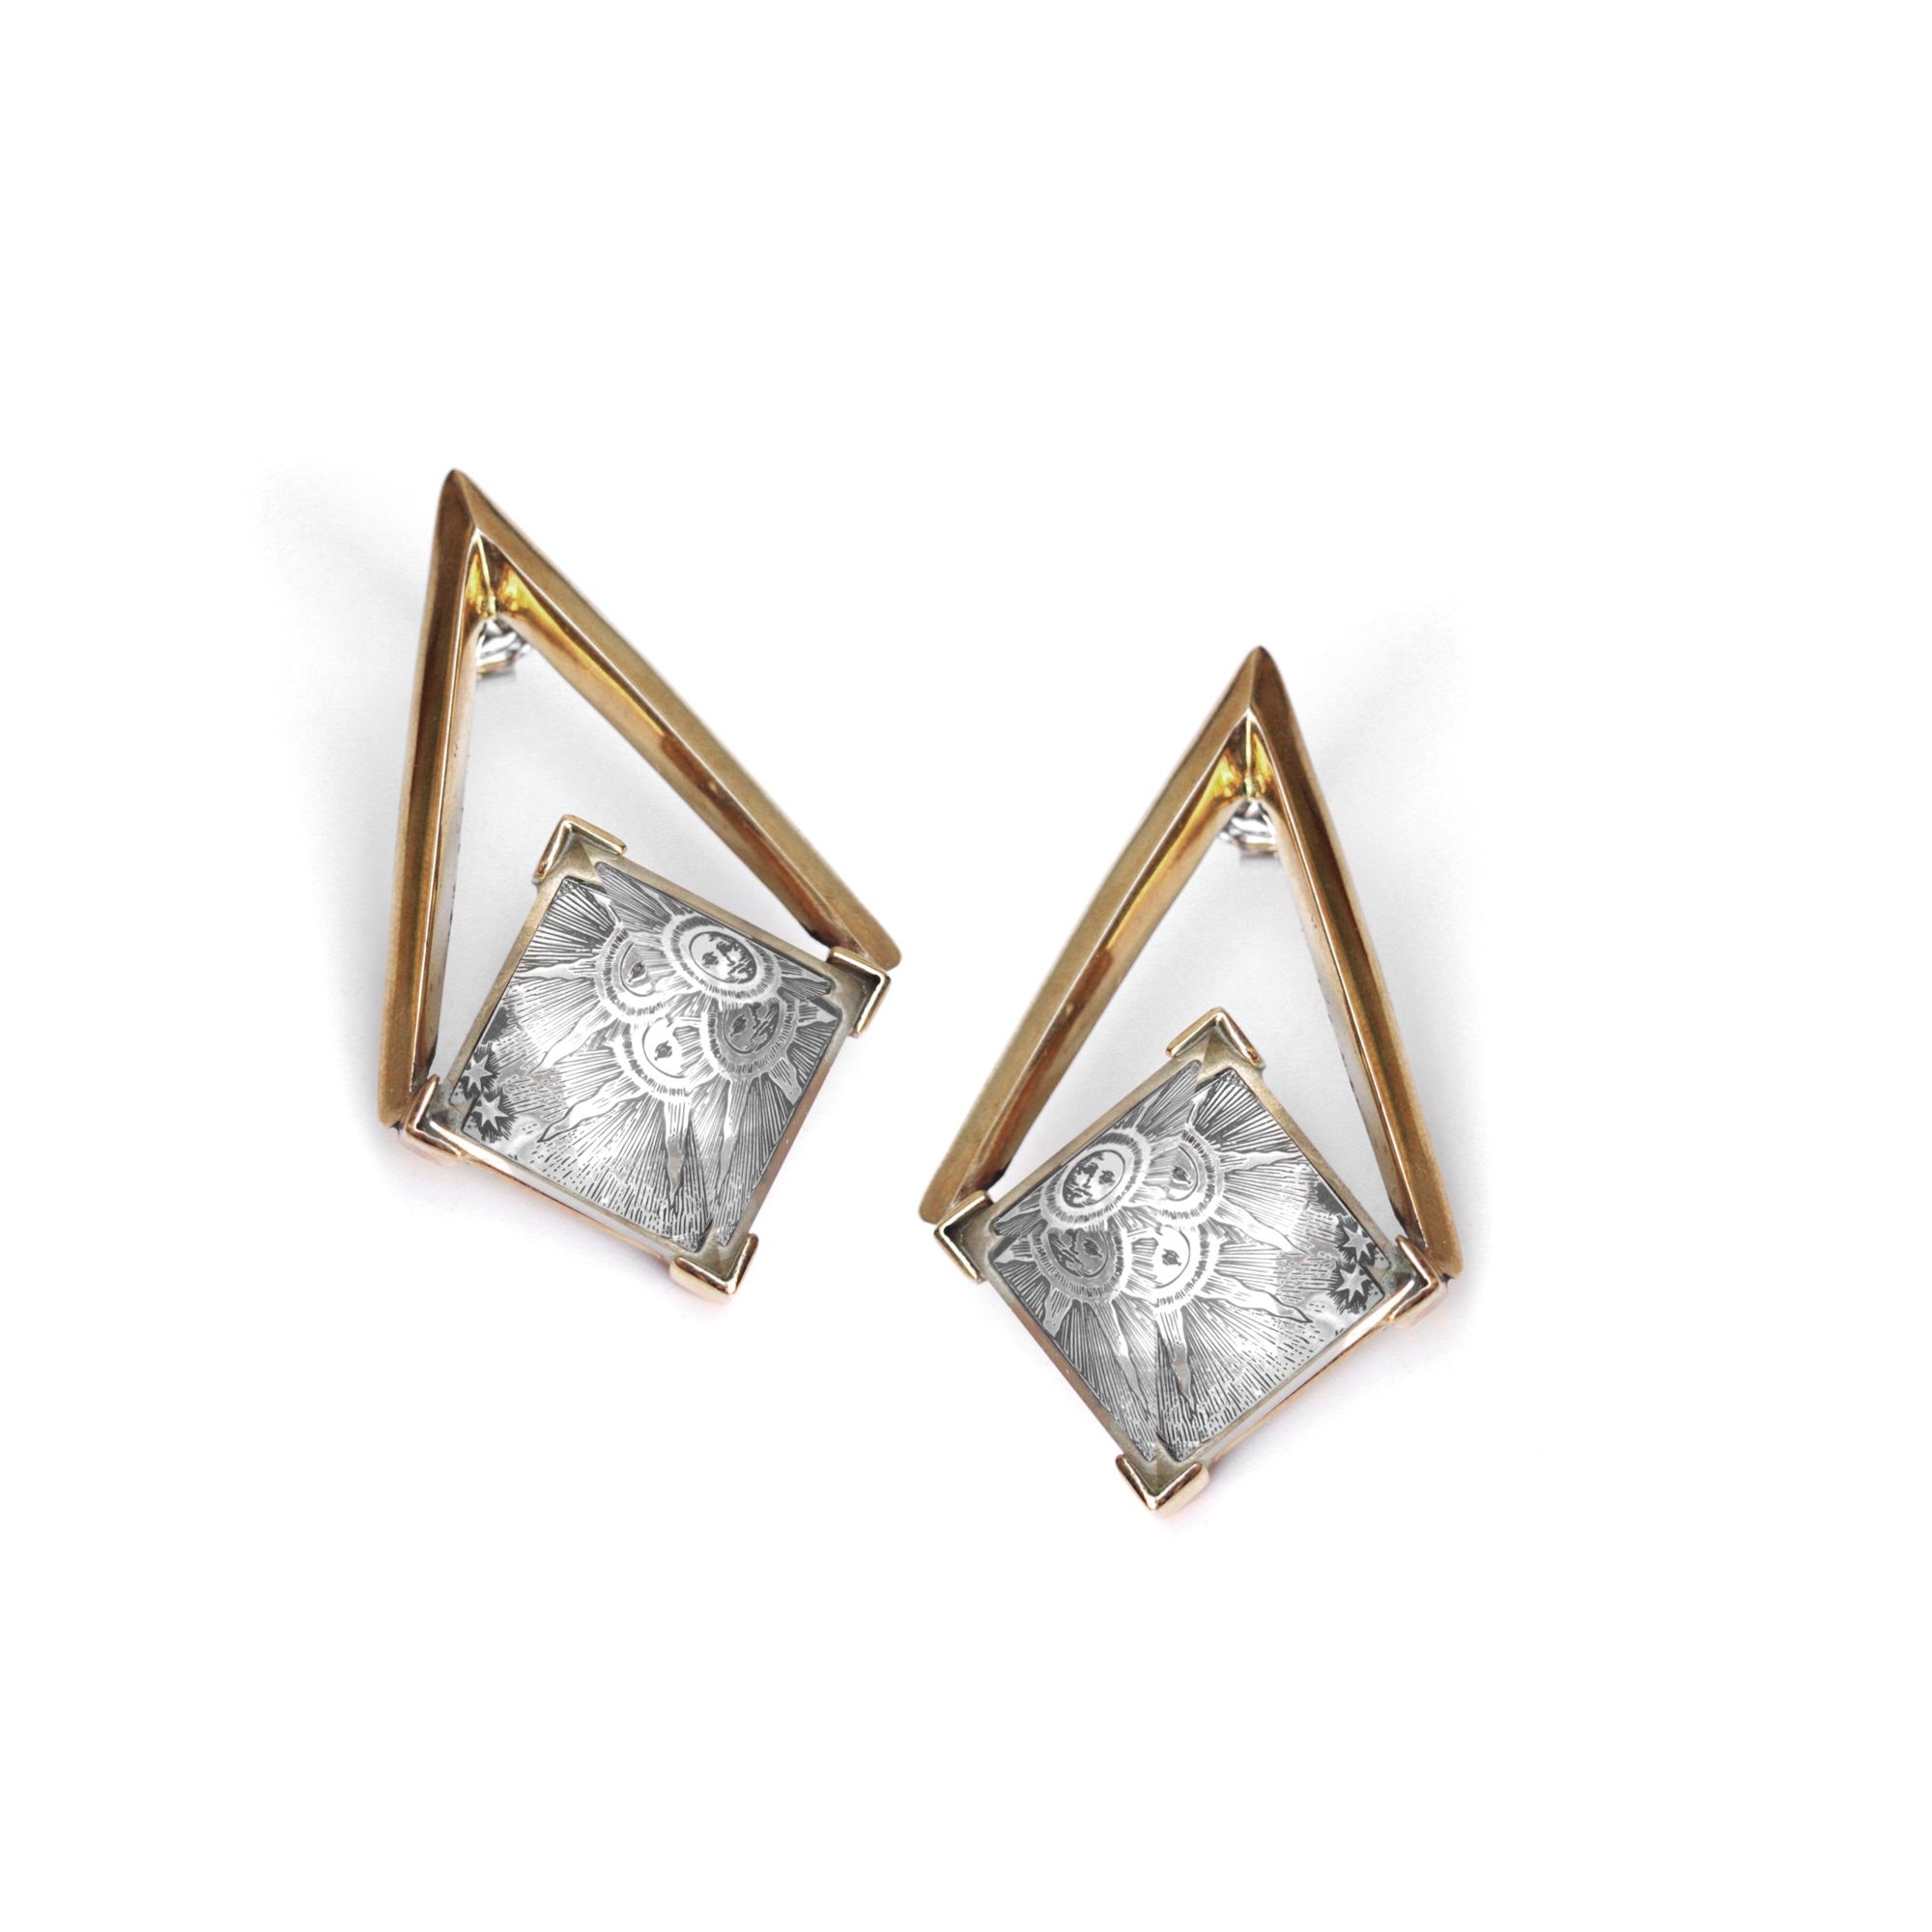 Medium 'Entropia' earrings Bronze and silver earrings with pyramid